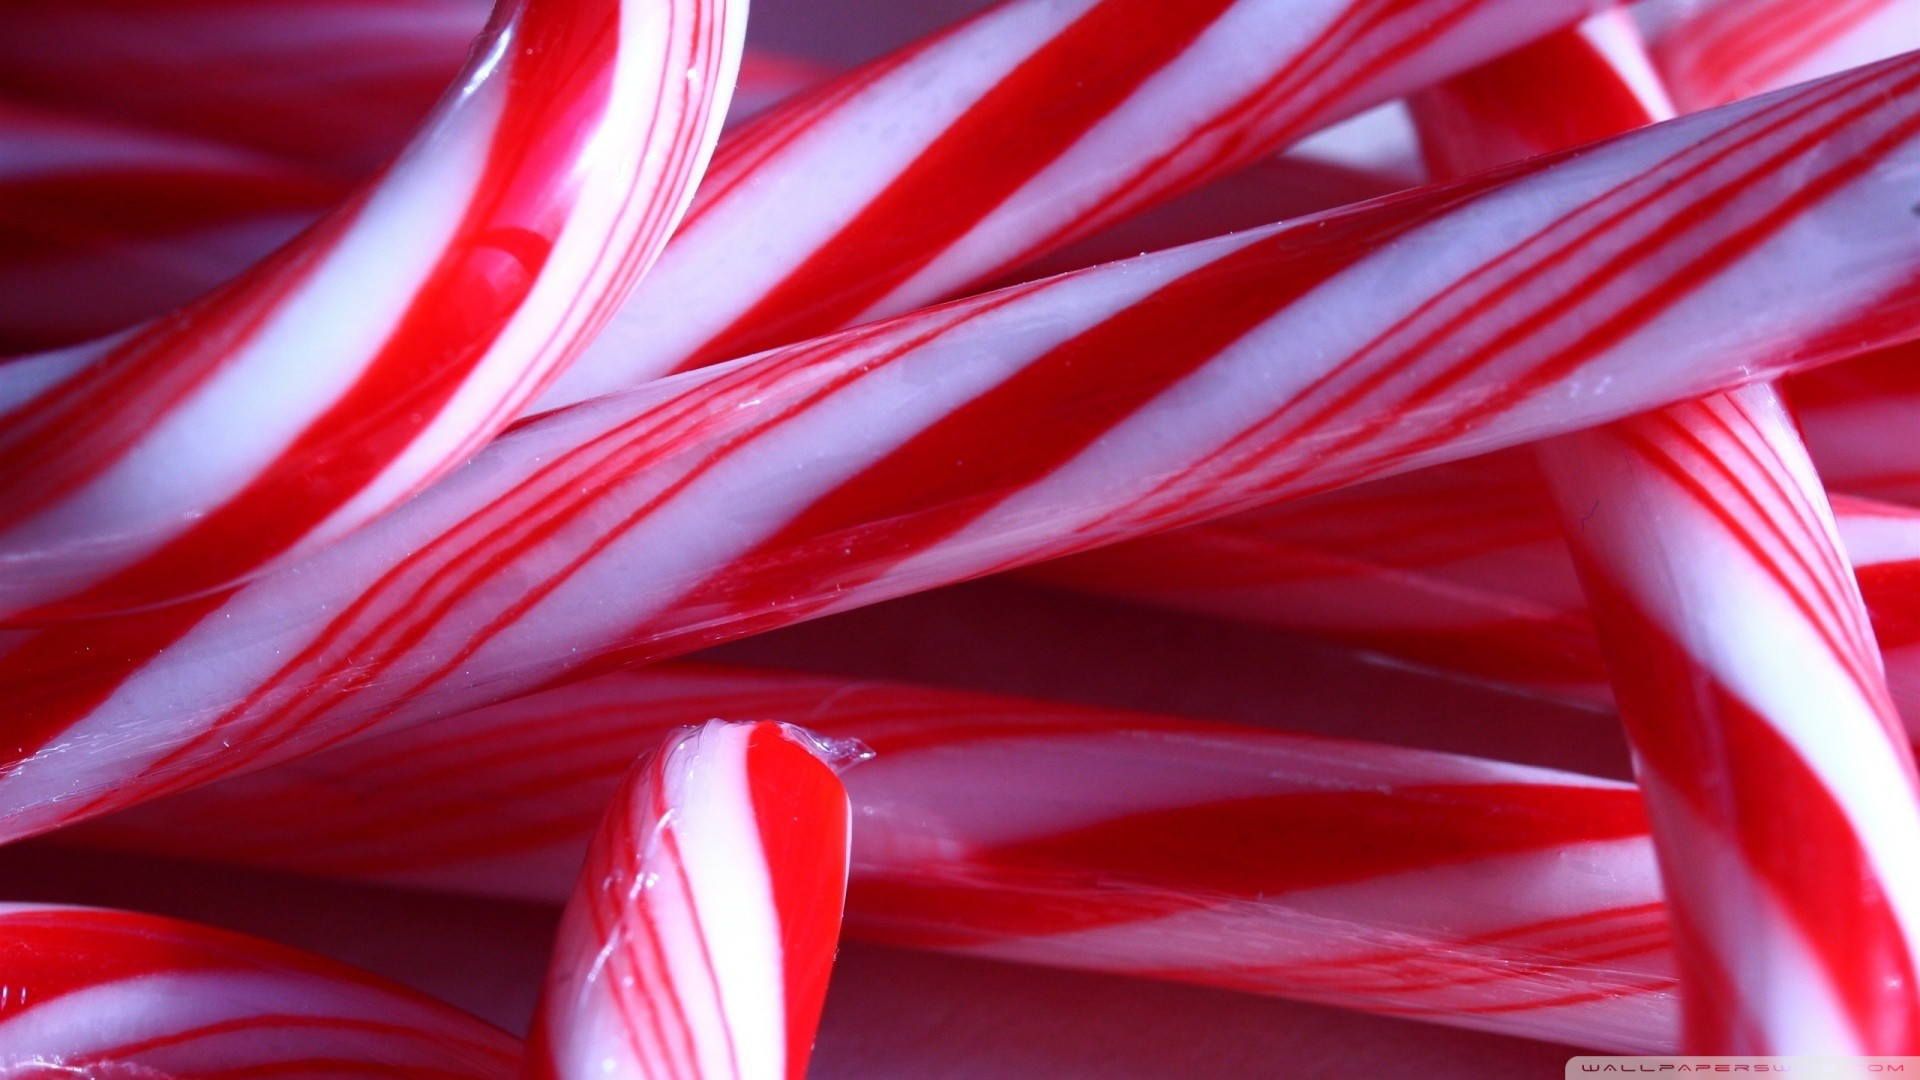 1920x1080 candy cane wallpaper